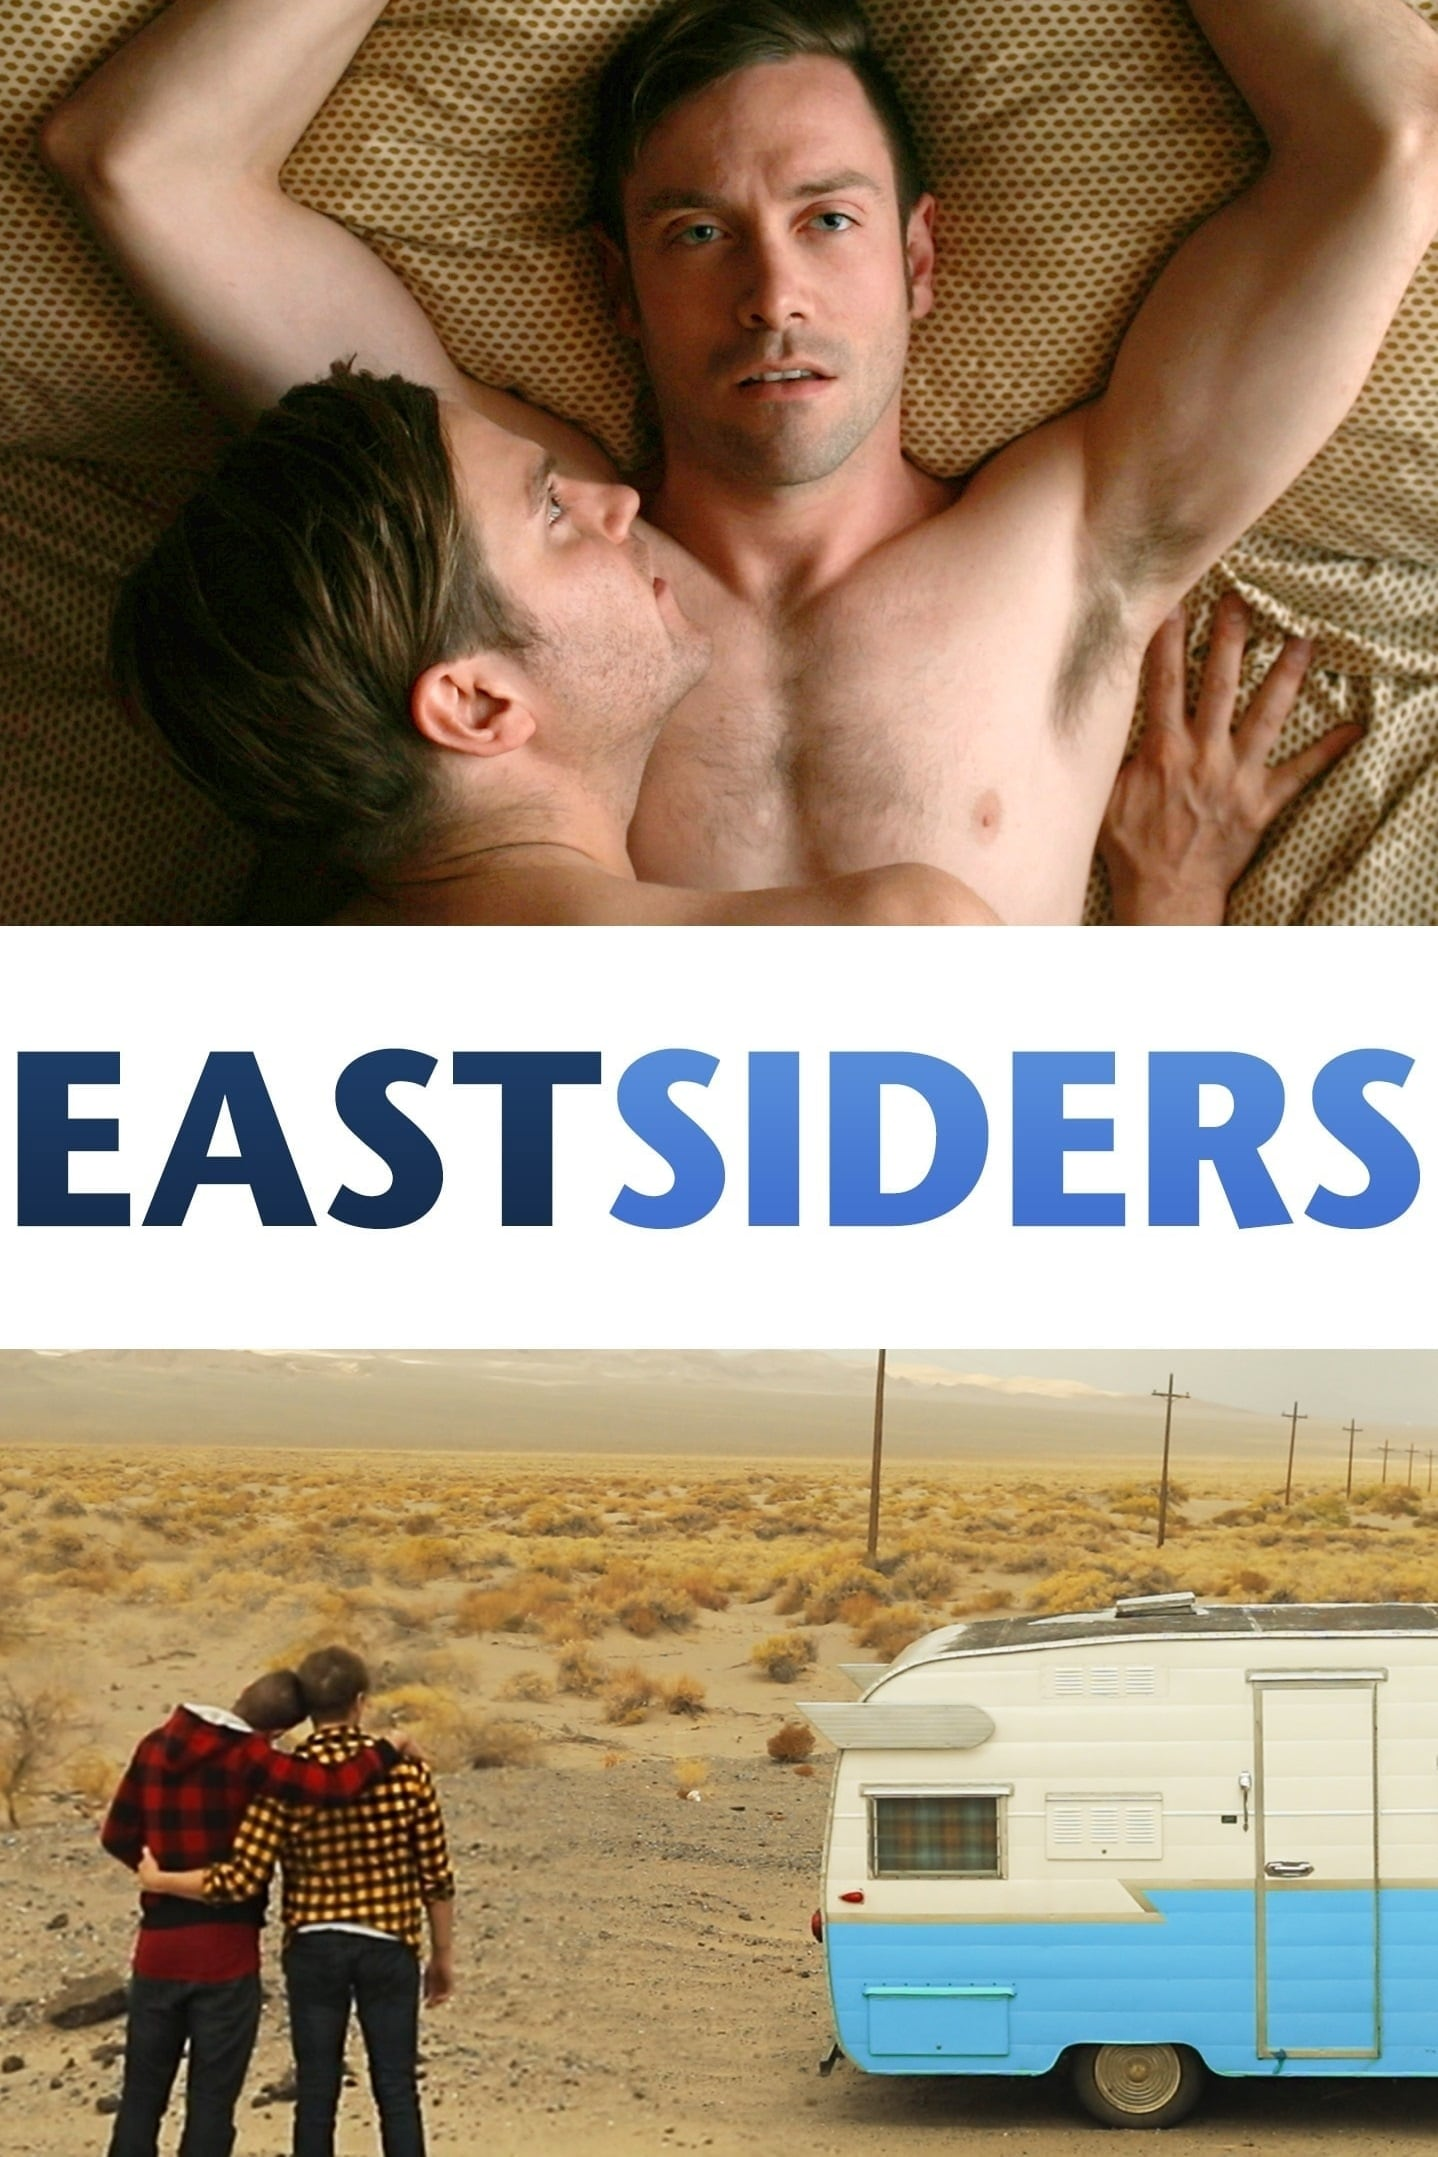 EastSiders (2012)